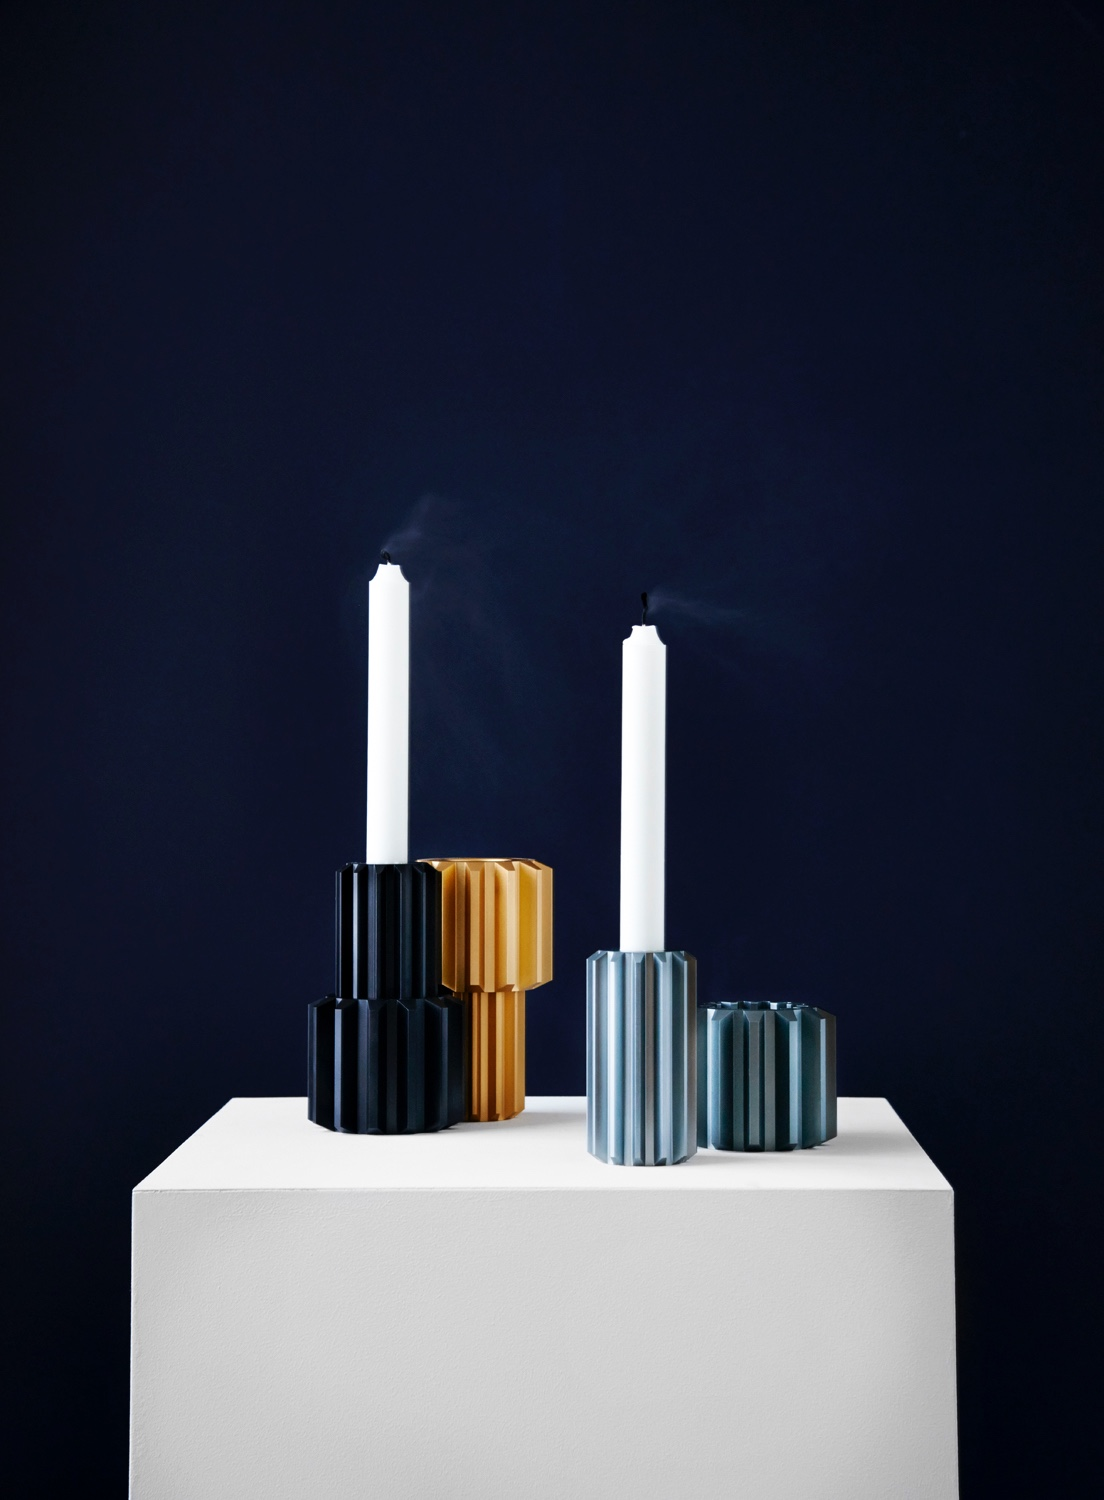 Gear Candle Holder designed by Rikke Frost. Inspired by a trip to DieselHouse, an exhibition on diesel technology in Copenhagen, the Gear Candle Holder strikes an urbane industrial countenance.